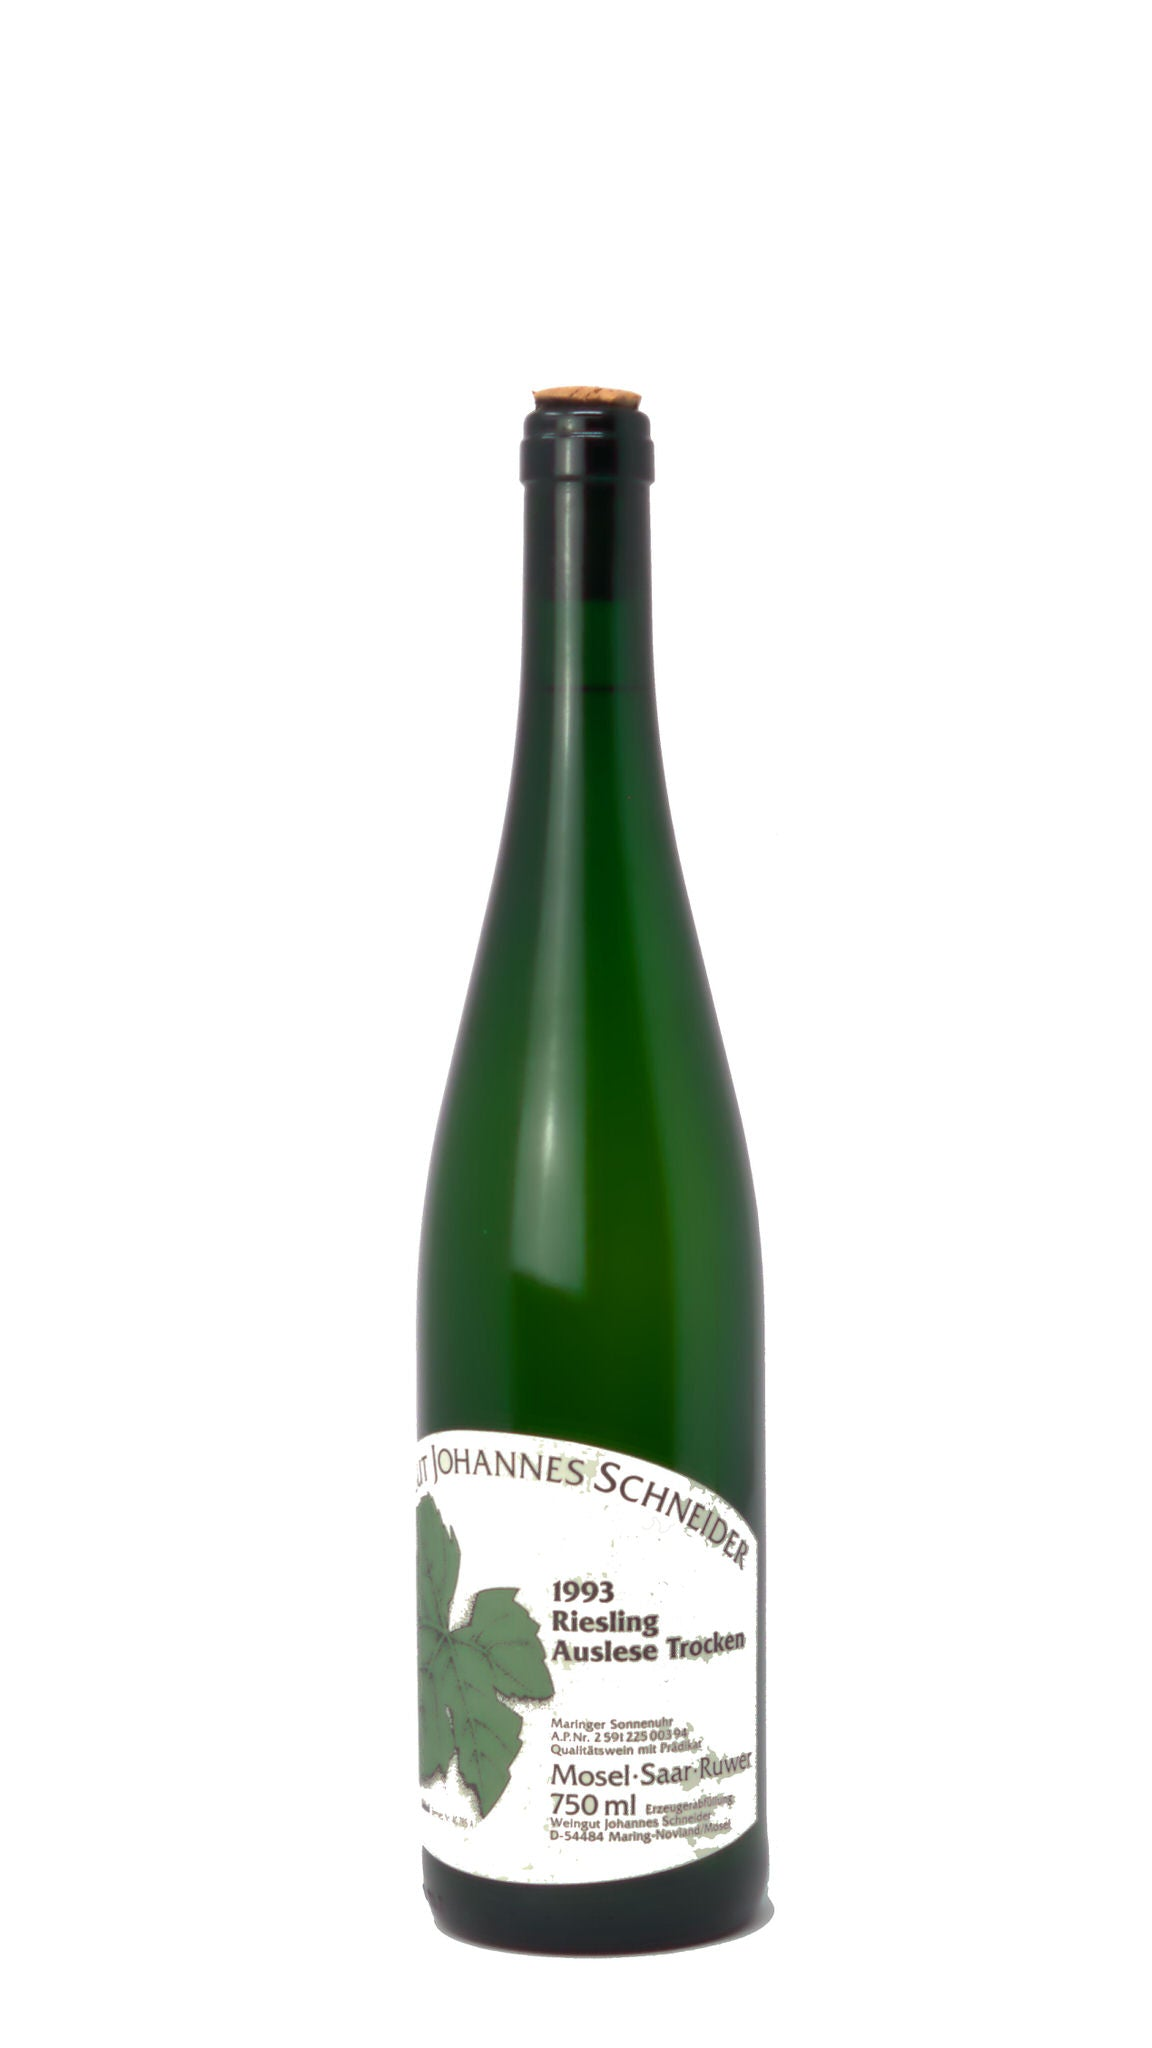 1993 Riesling Auslese Dry